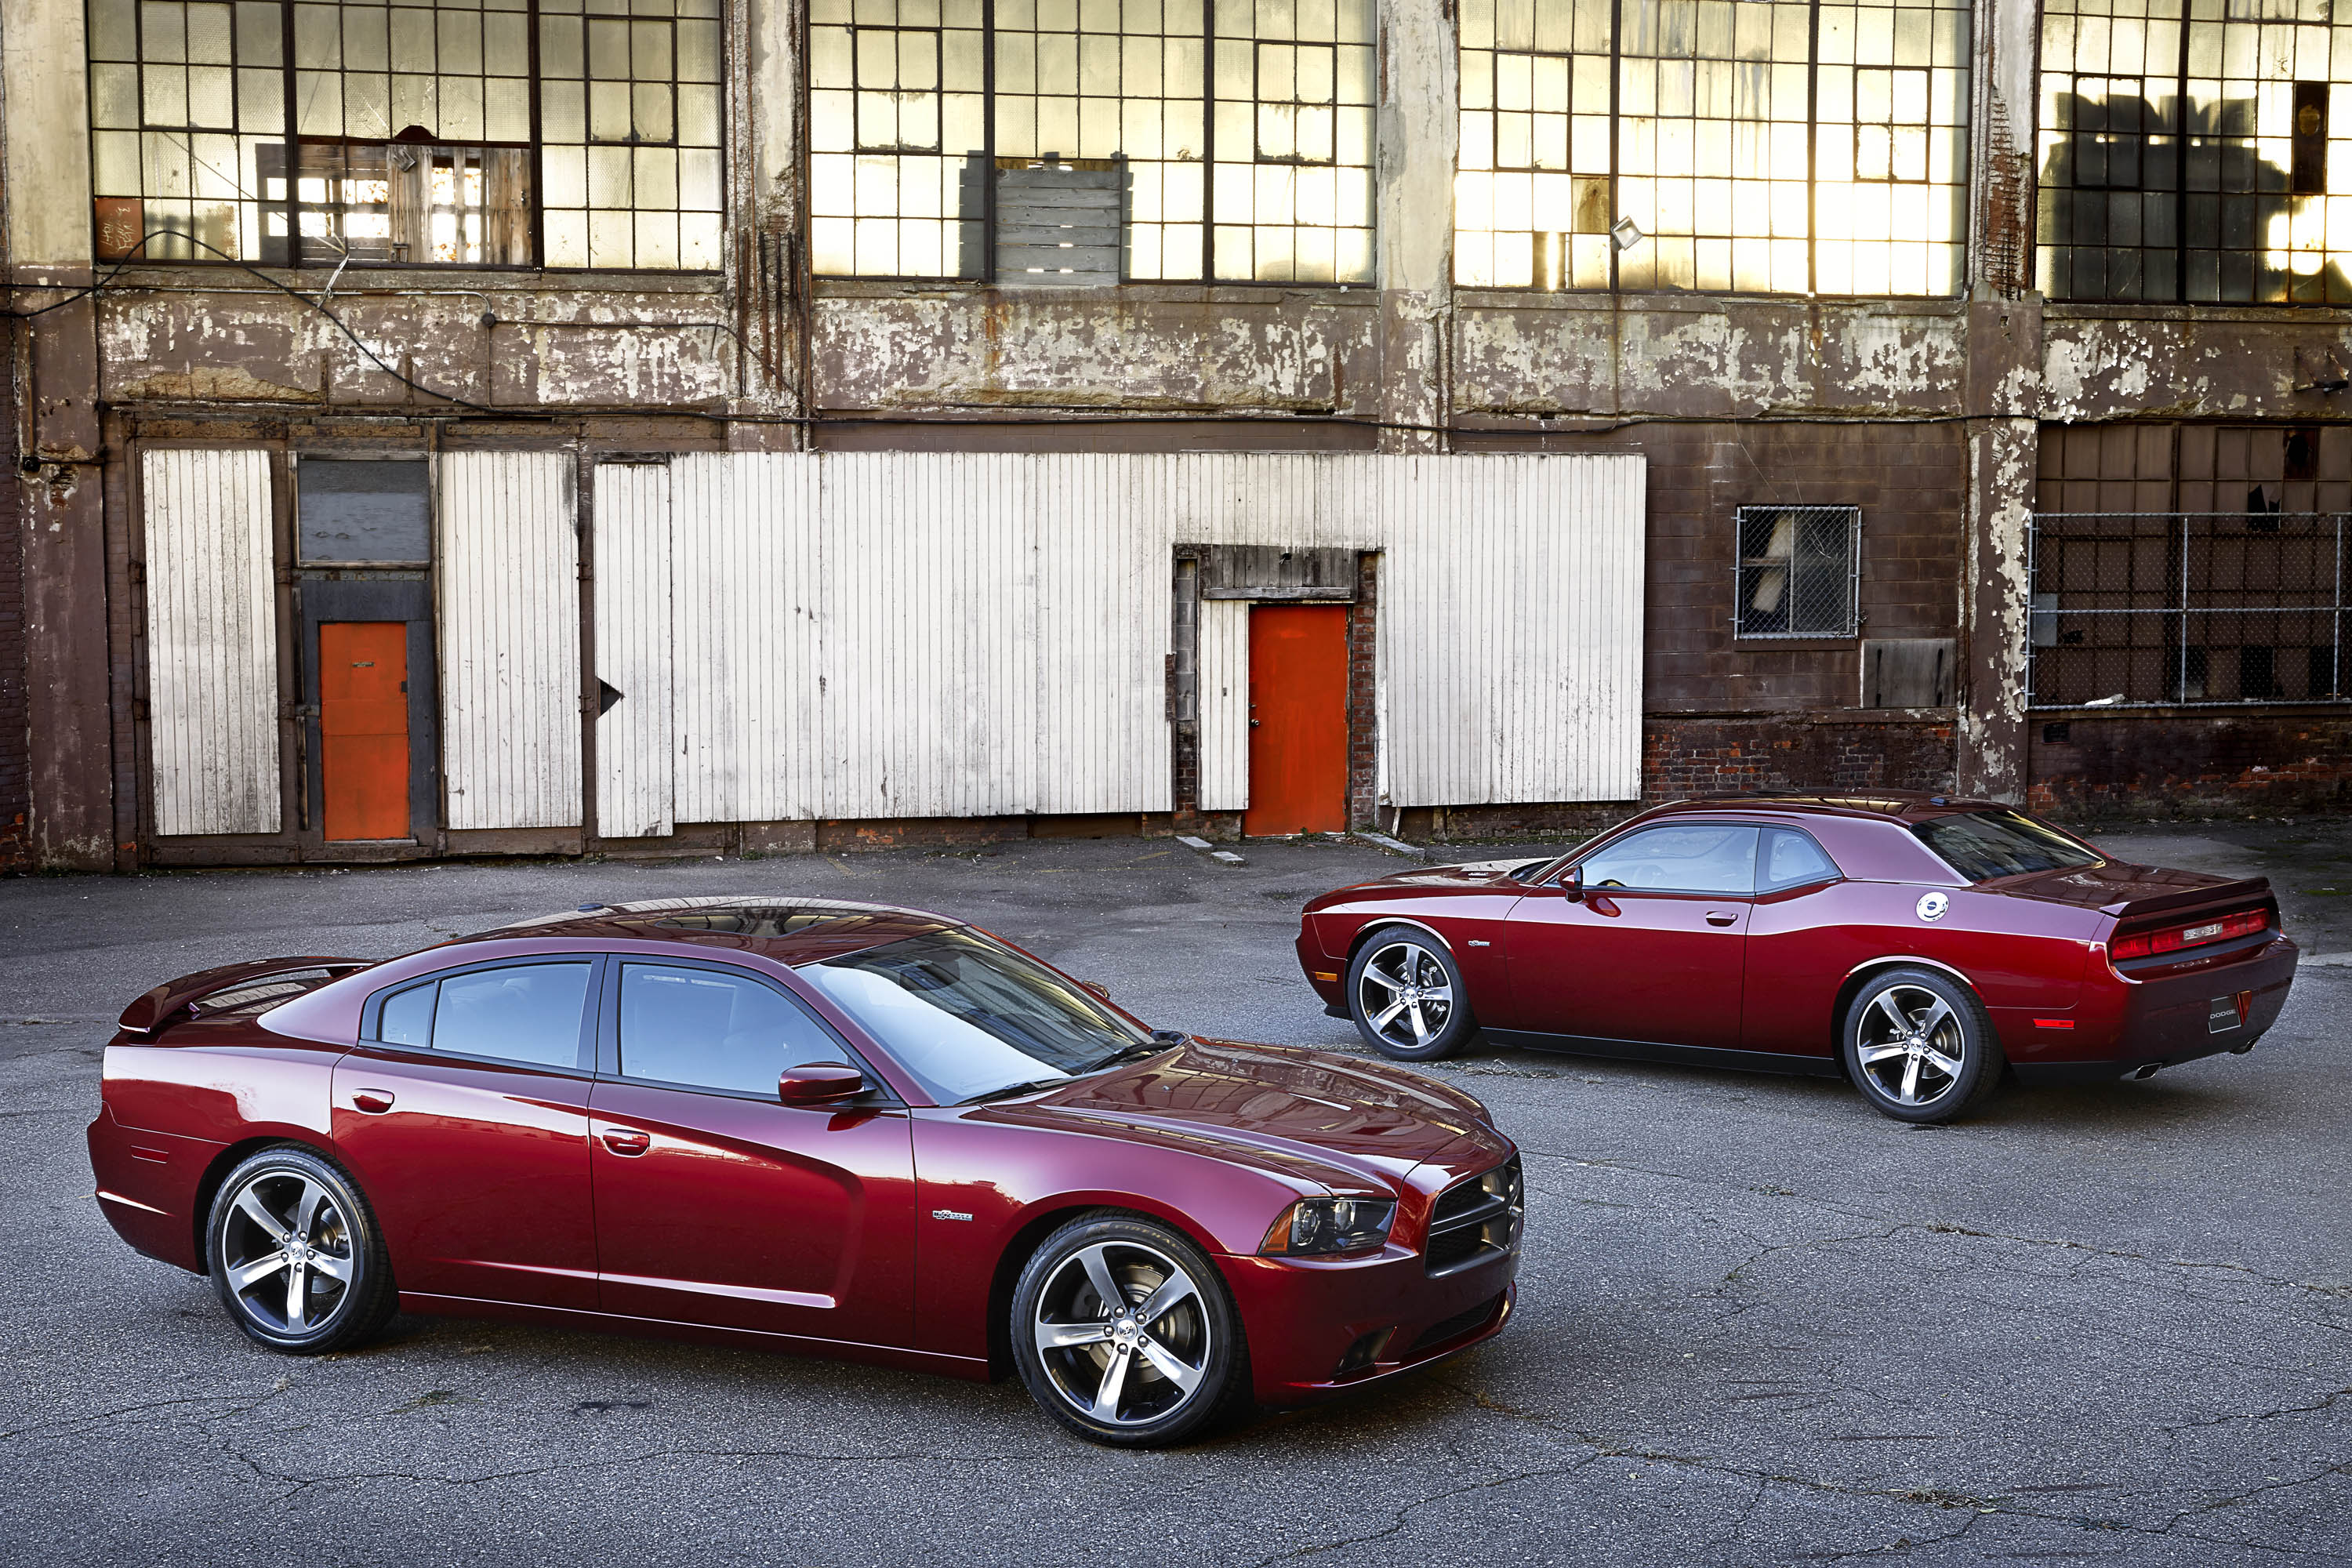 2014 Dodge Charger Challenger Centennial Editions Debut Before 2013 Ram Paint Colors The